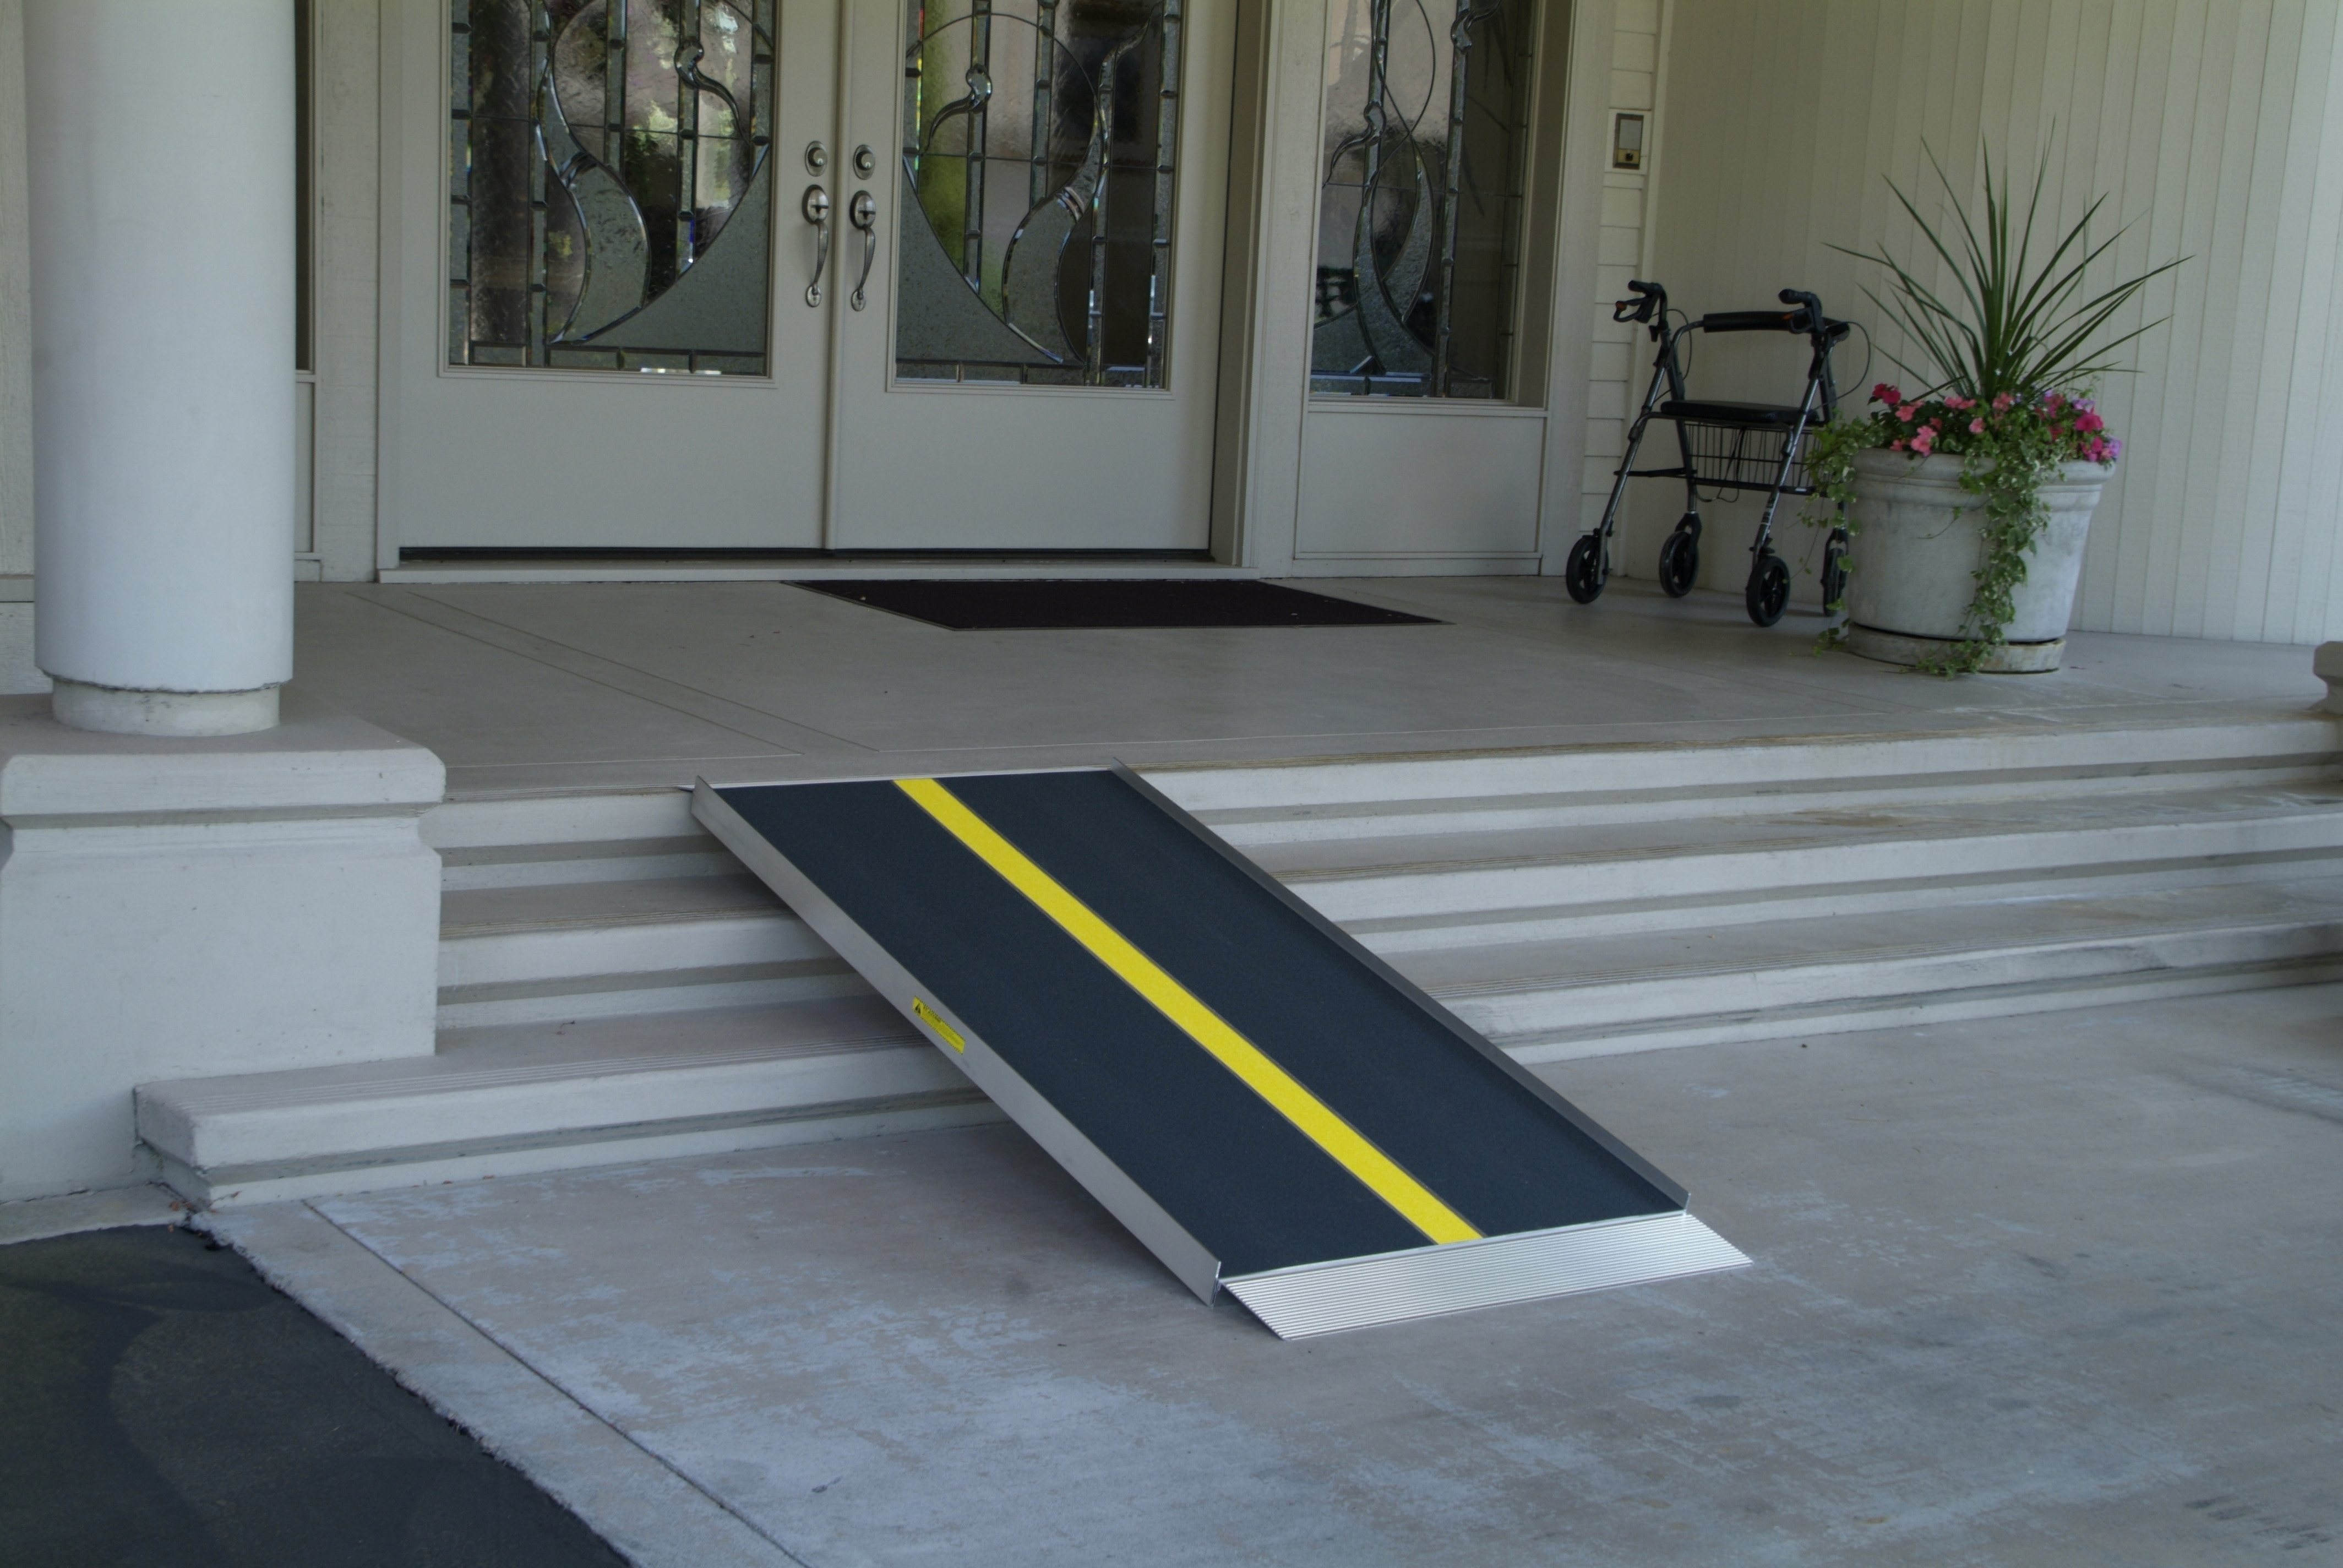 Portable Wheelchair Ramps For Stairs Madison Art Center Design